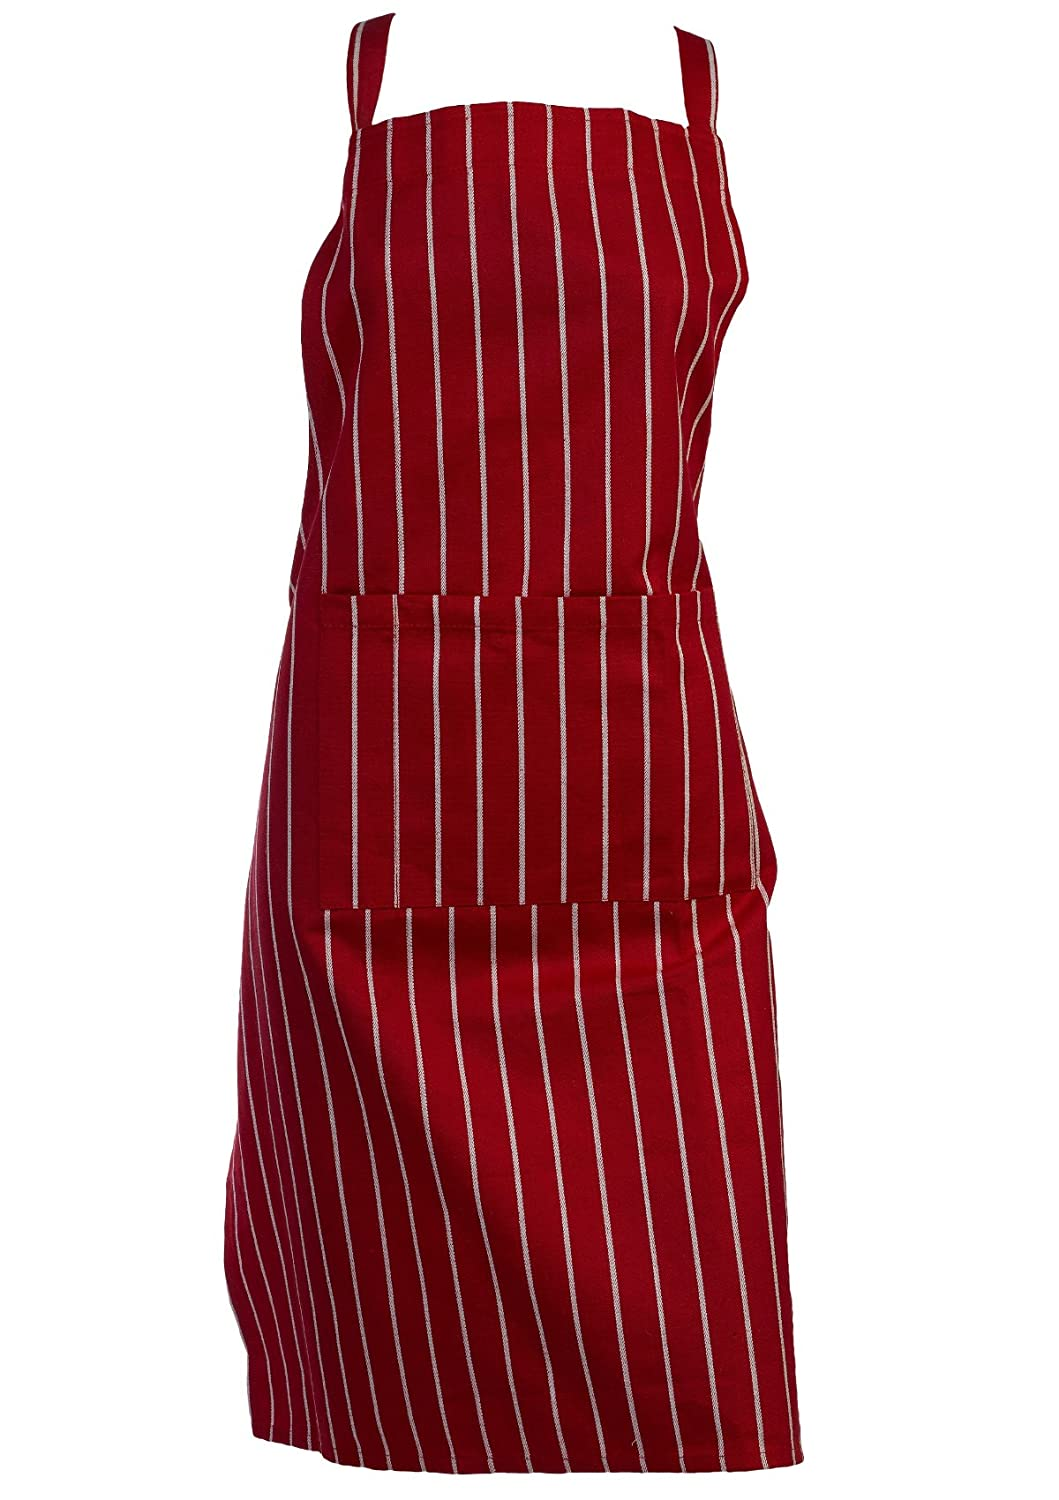 100% Cotton Woven Striped Butchers Kitchen Cooks Apron with Pocket Classic Home Store